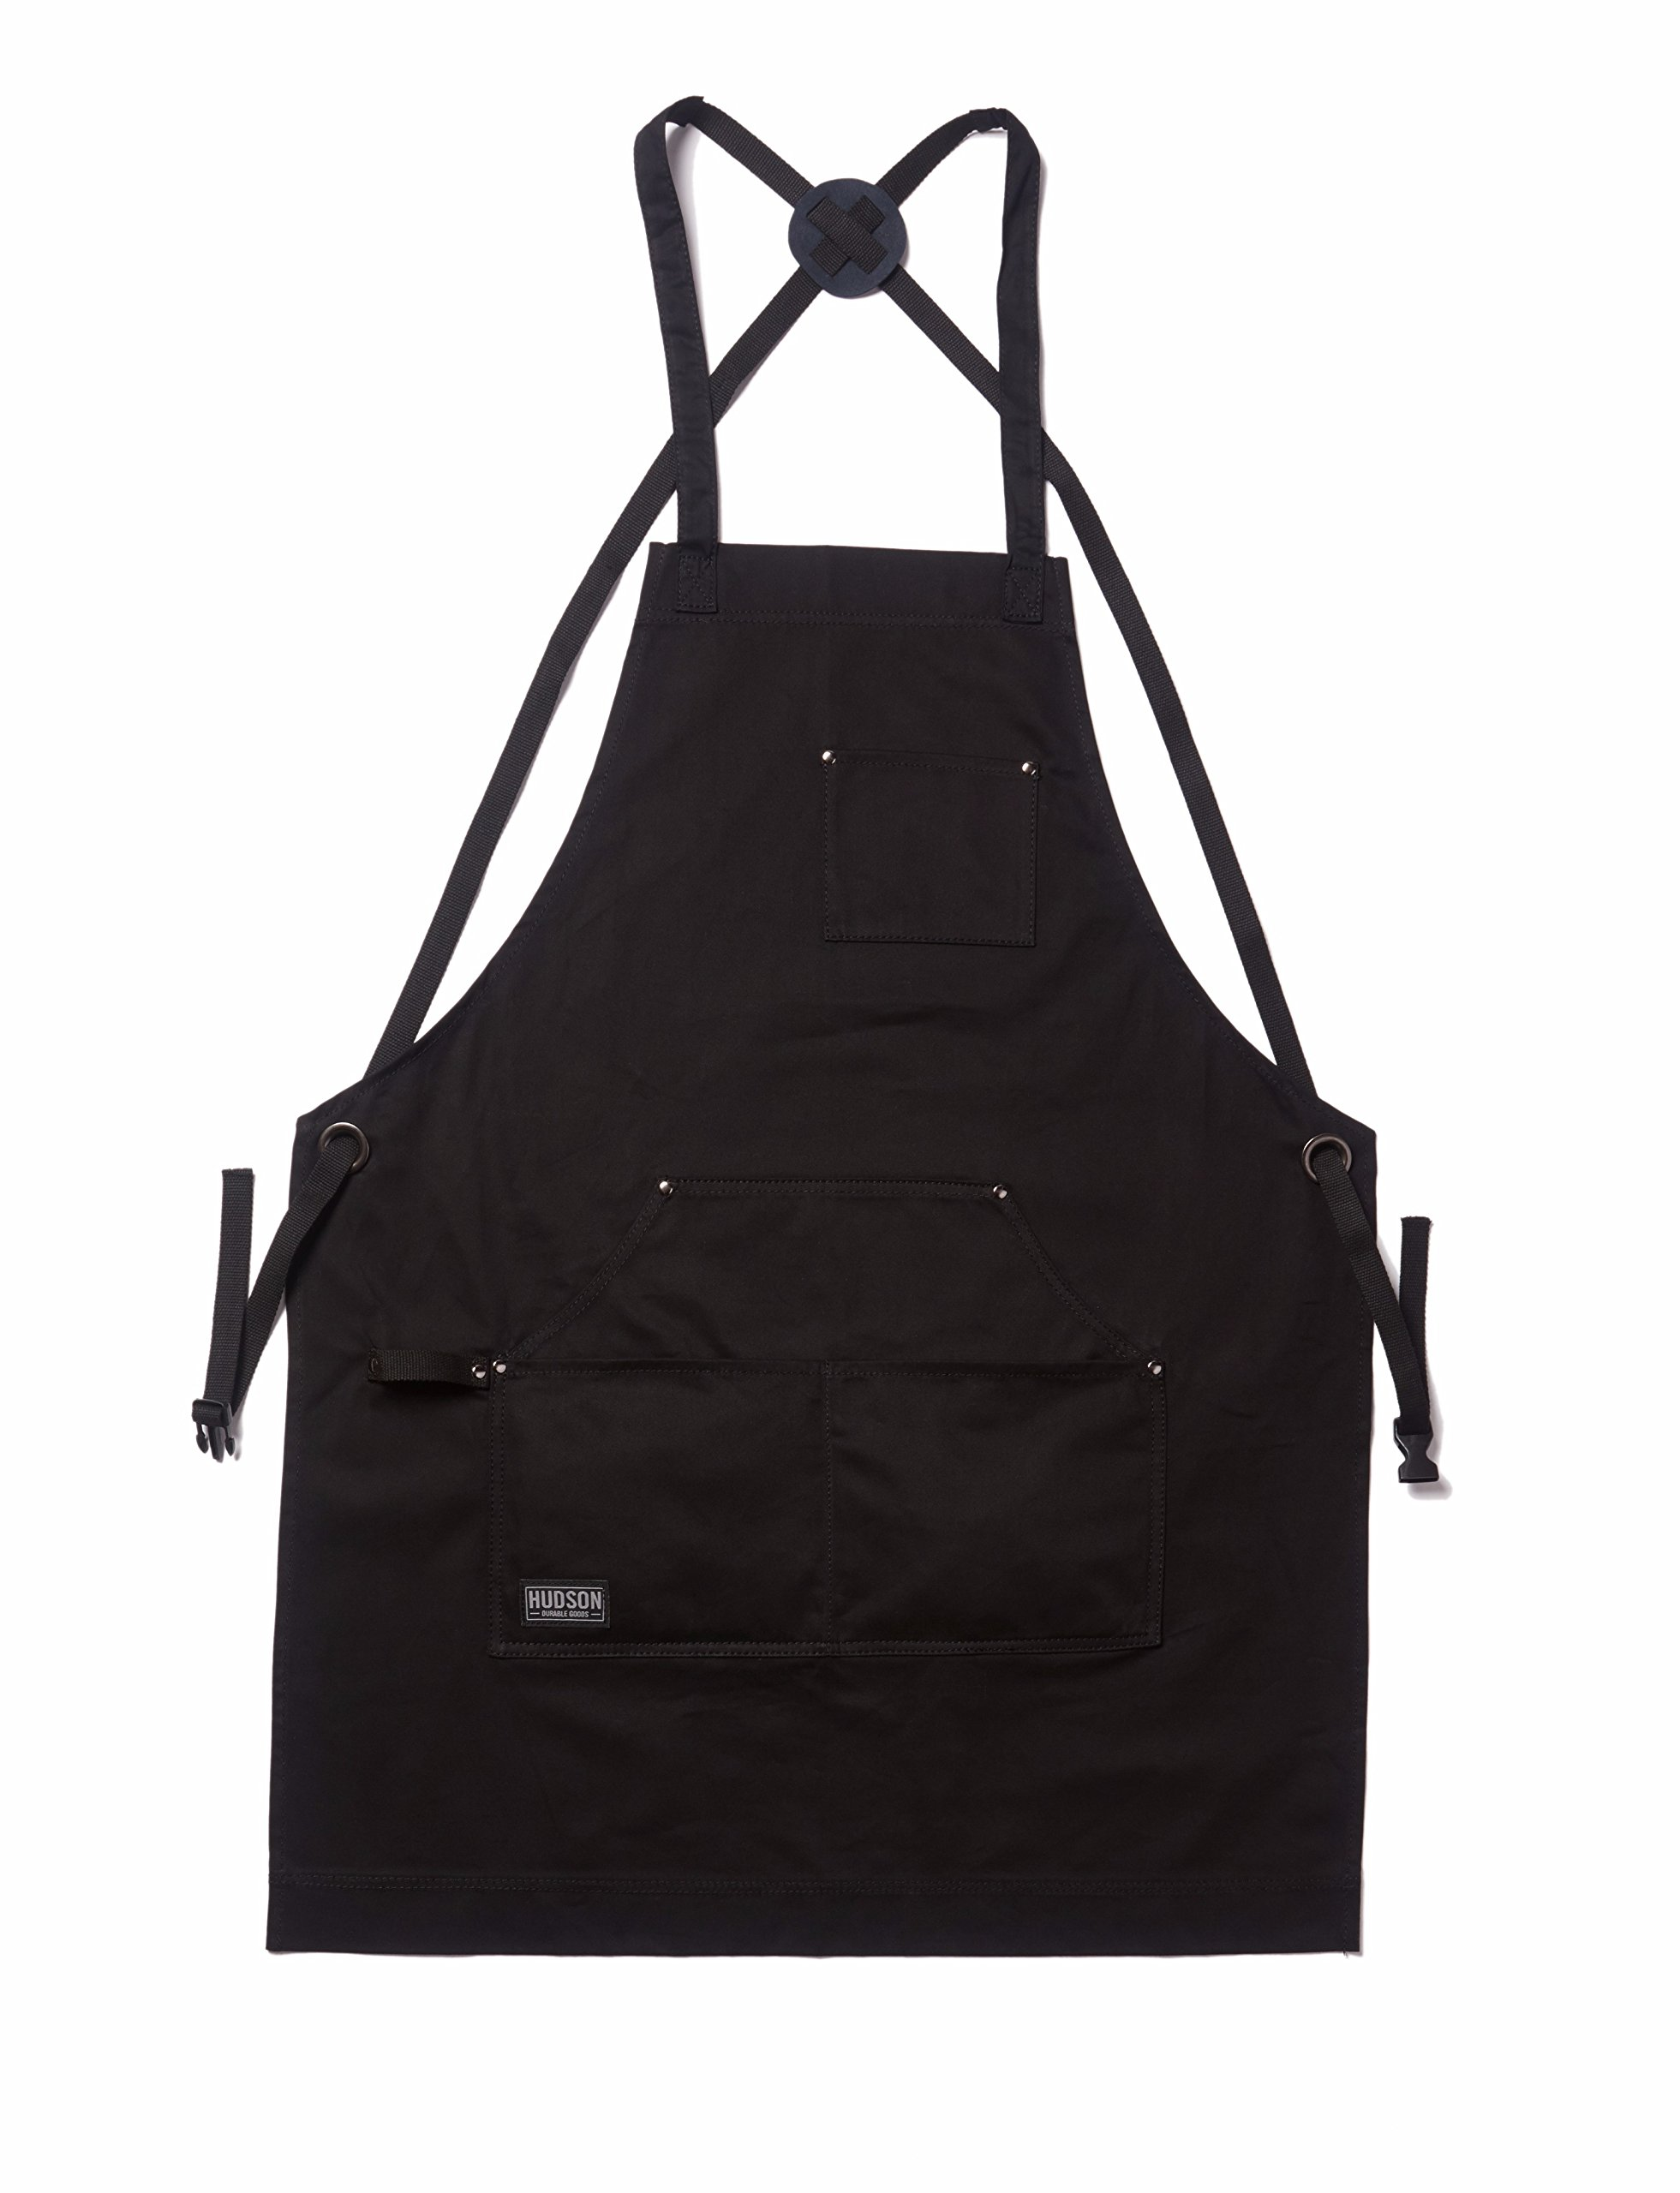 Hudson Durable Goods - Professional Grade Chef Apron for Kitchen, BBQ, and Grill (Black) with Towel Loop + Tool Pockets + Quick Release Buckle, Adjustable M to XXL by Hudson Durable Goods (Image #8)